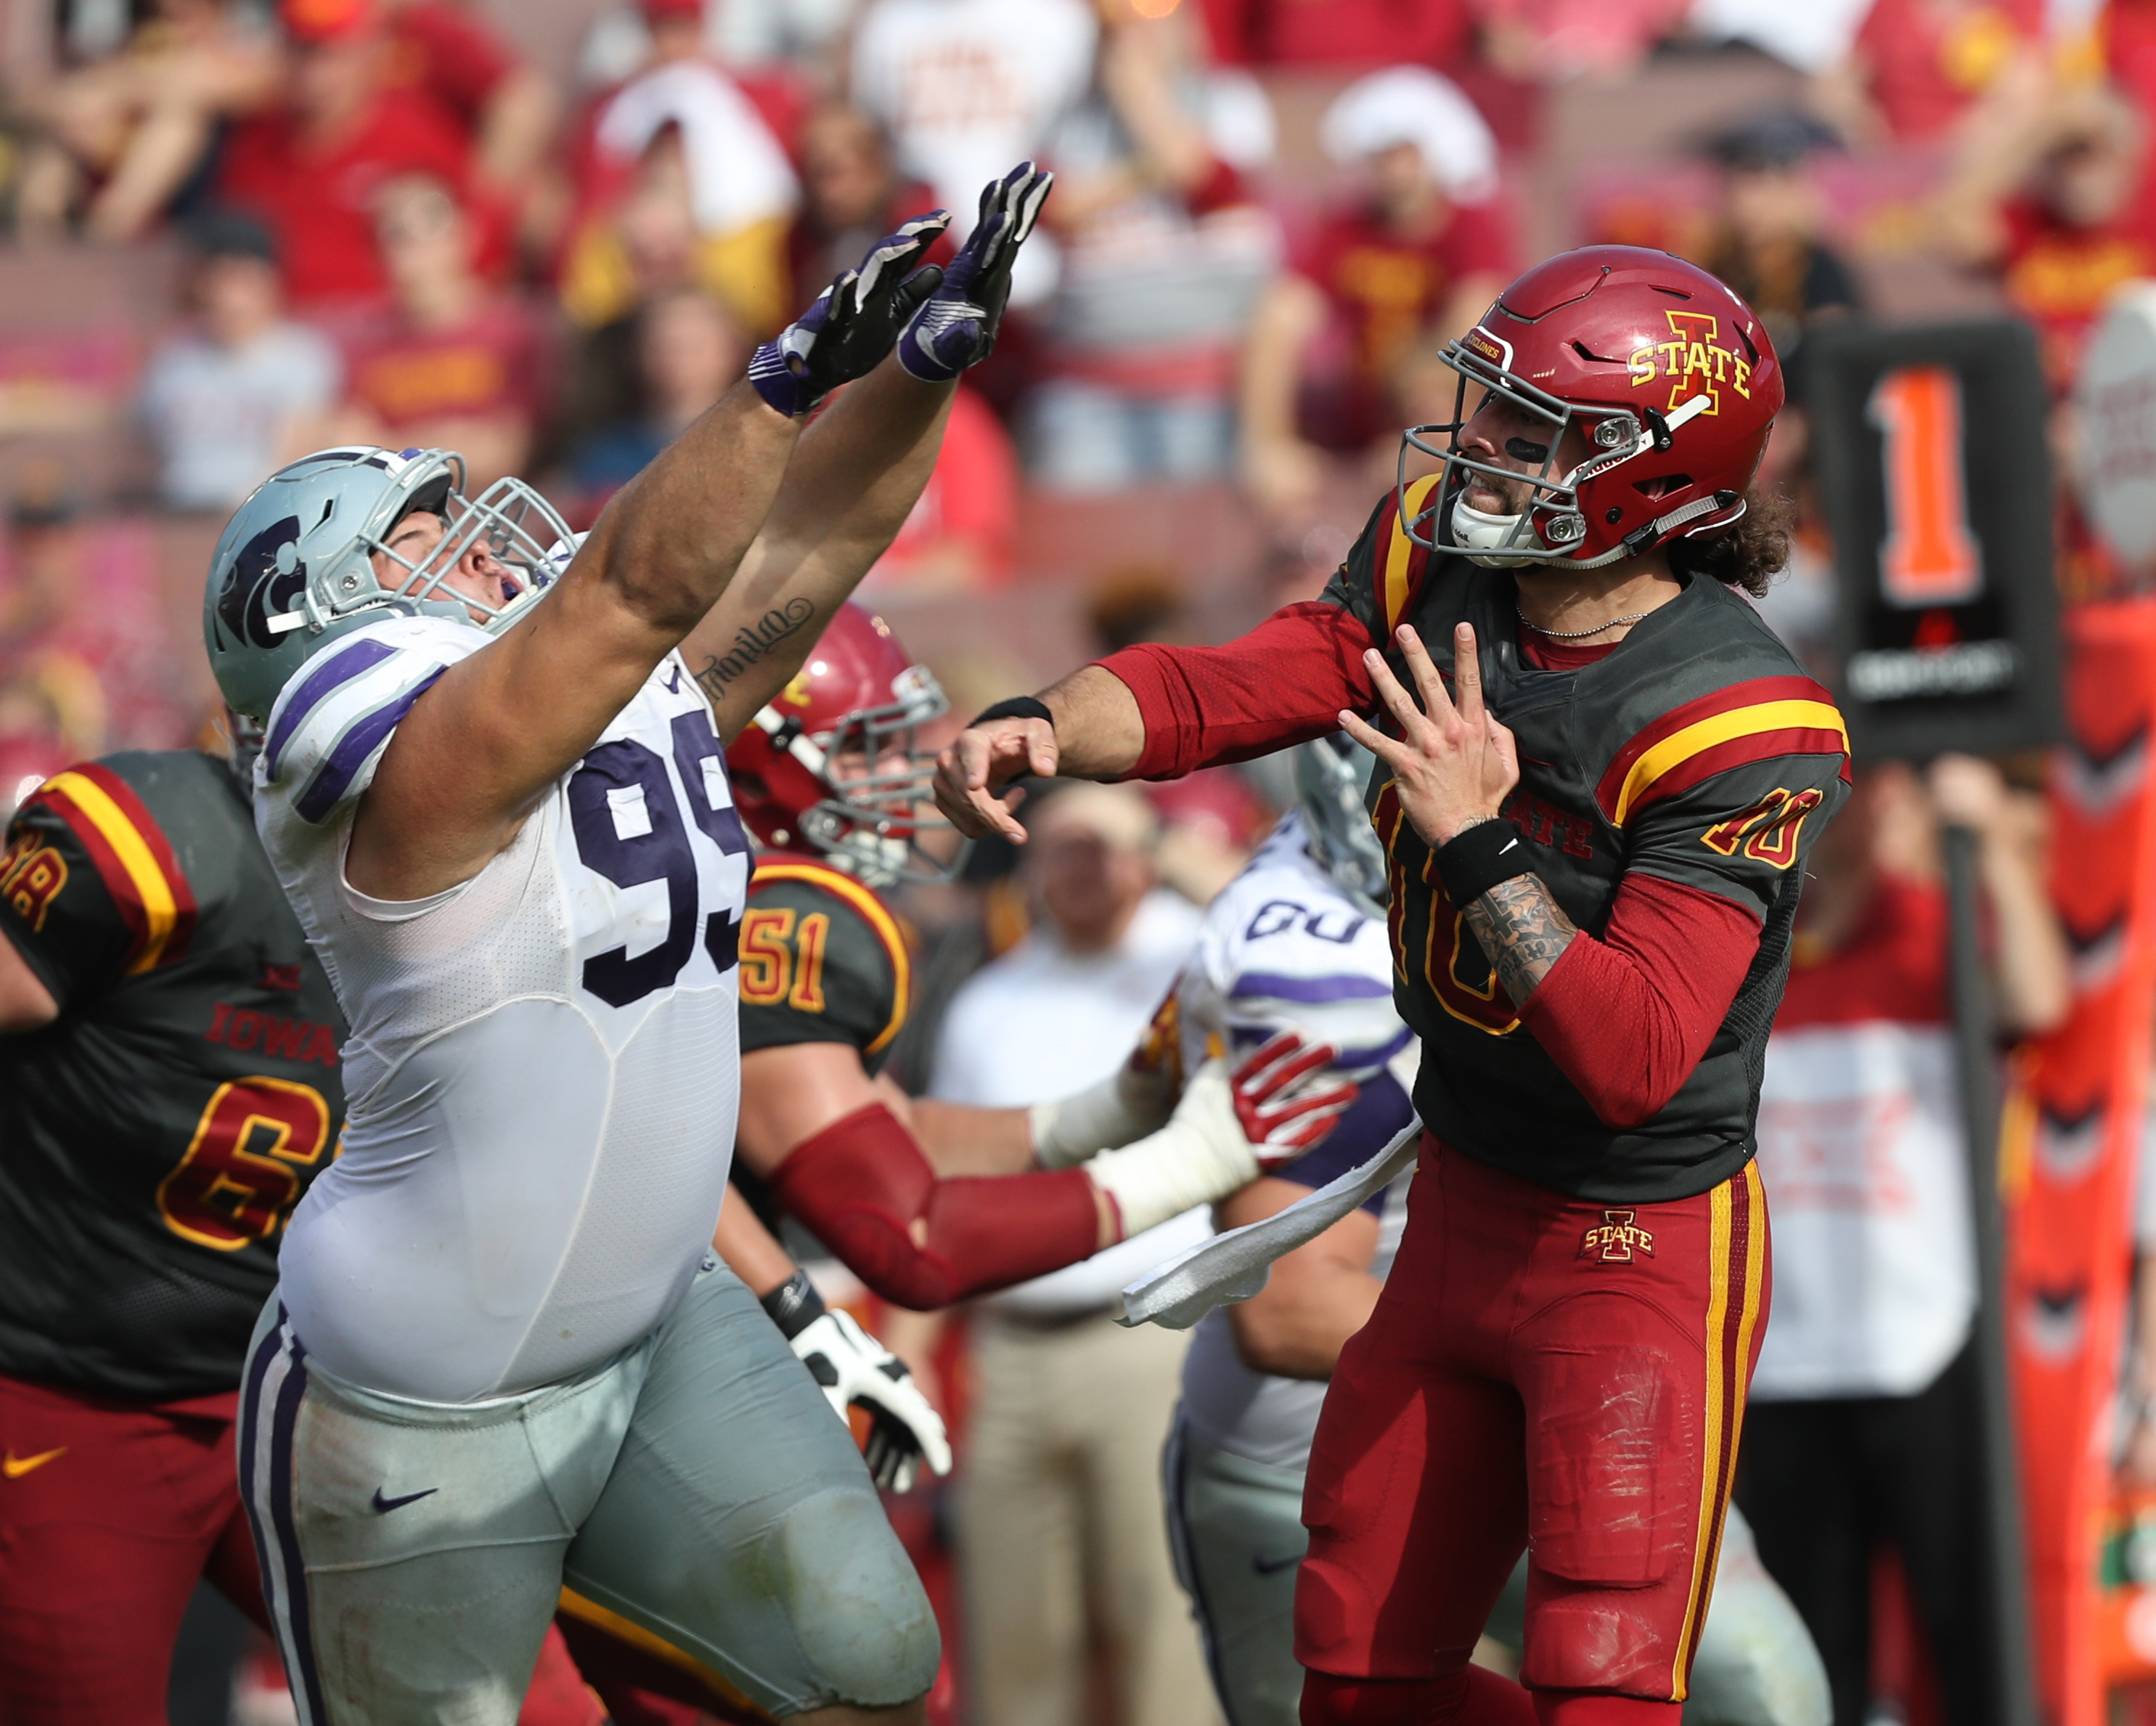 Bill Snyder has owned Iowa State, but there haven't been too many Cyclones squads this talented.